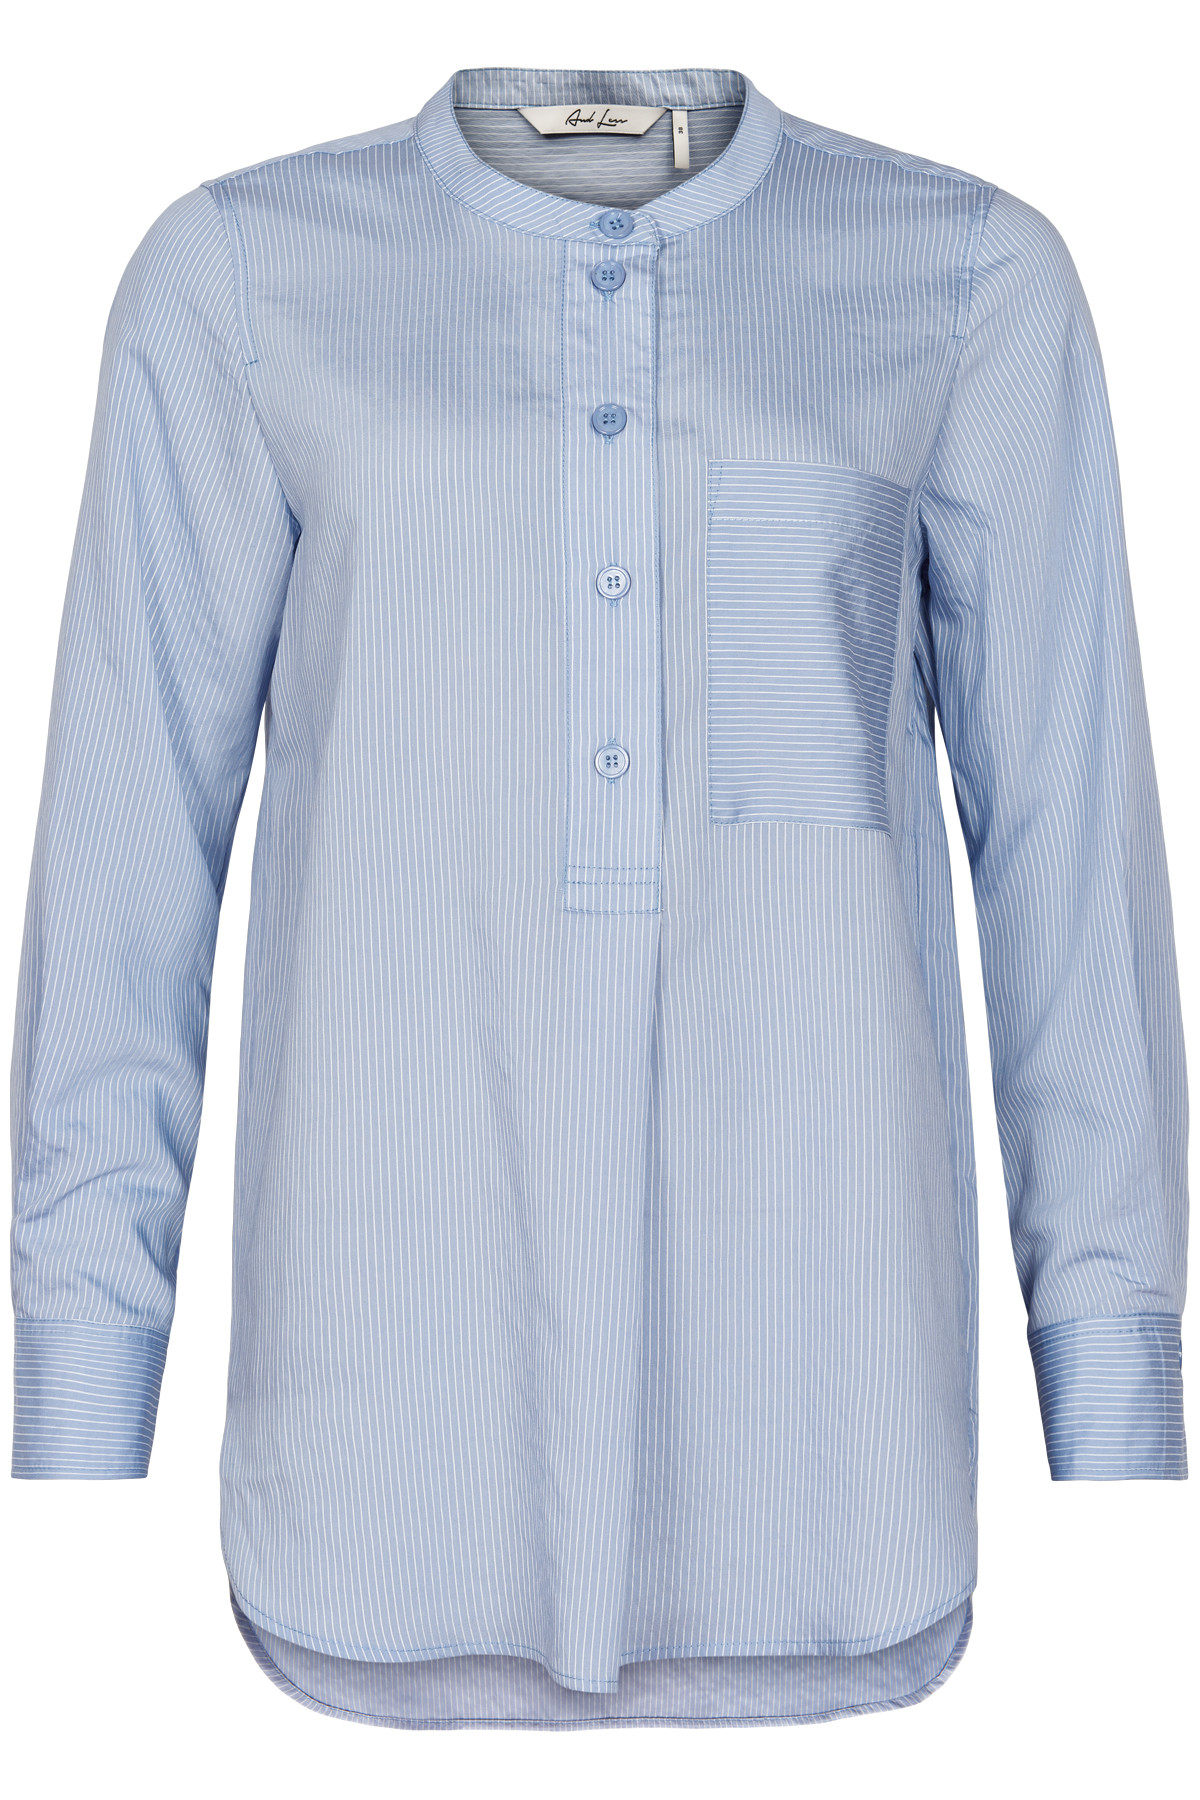 Image of   AND LESS ALACE BLUSE 5120002 (Colony Blue, 38)